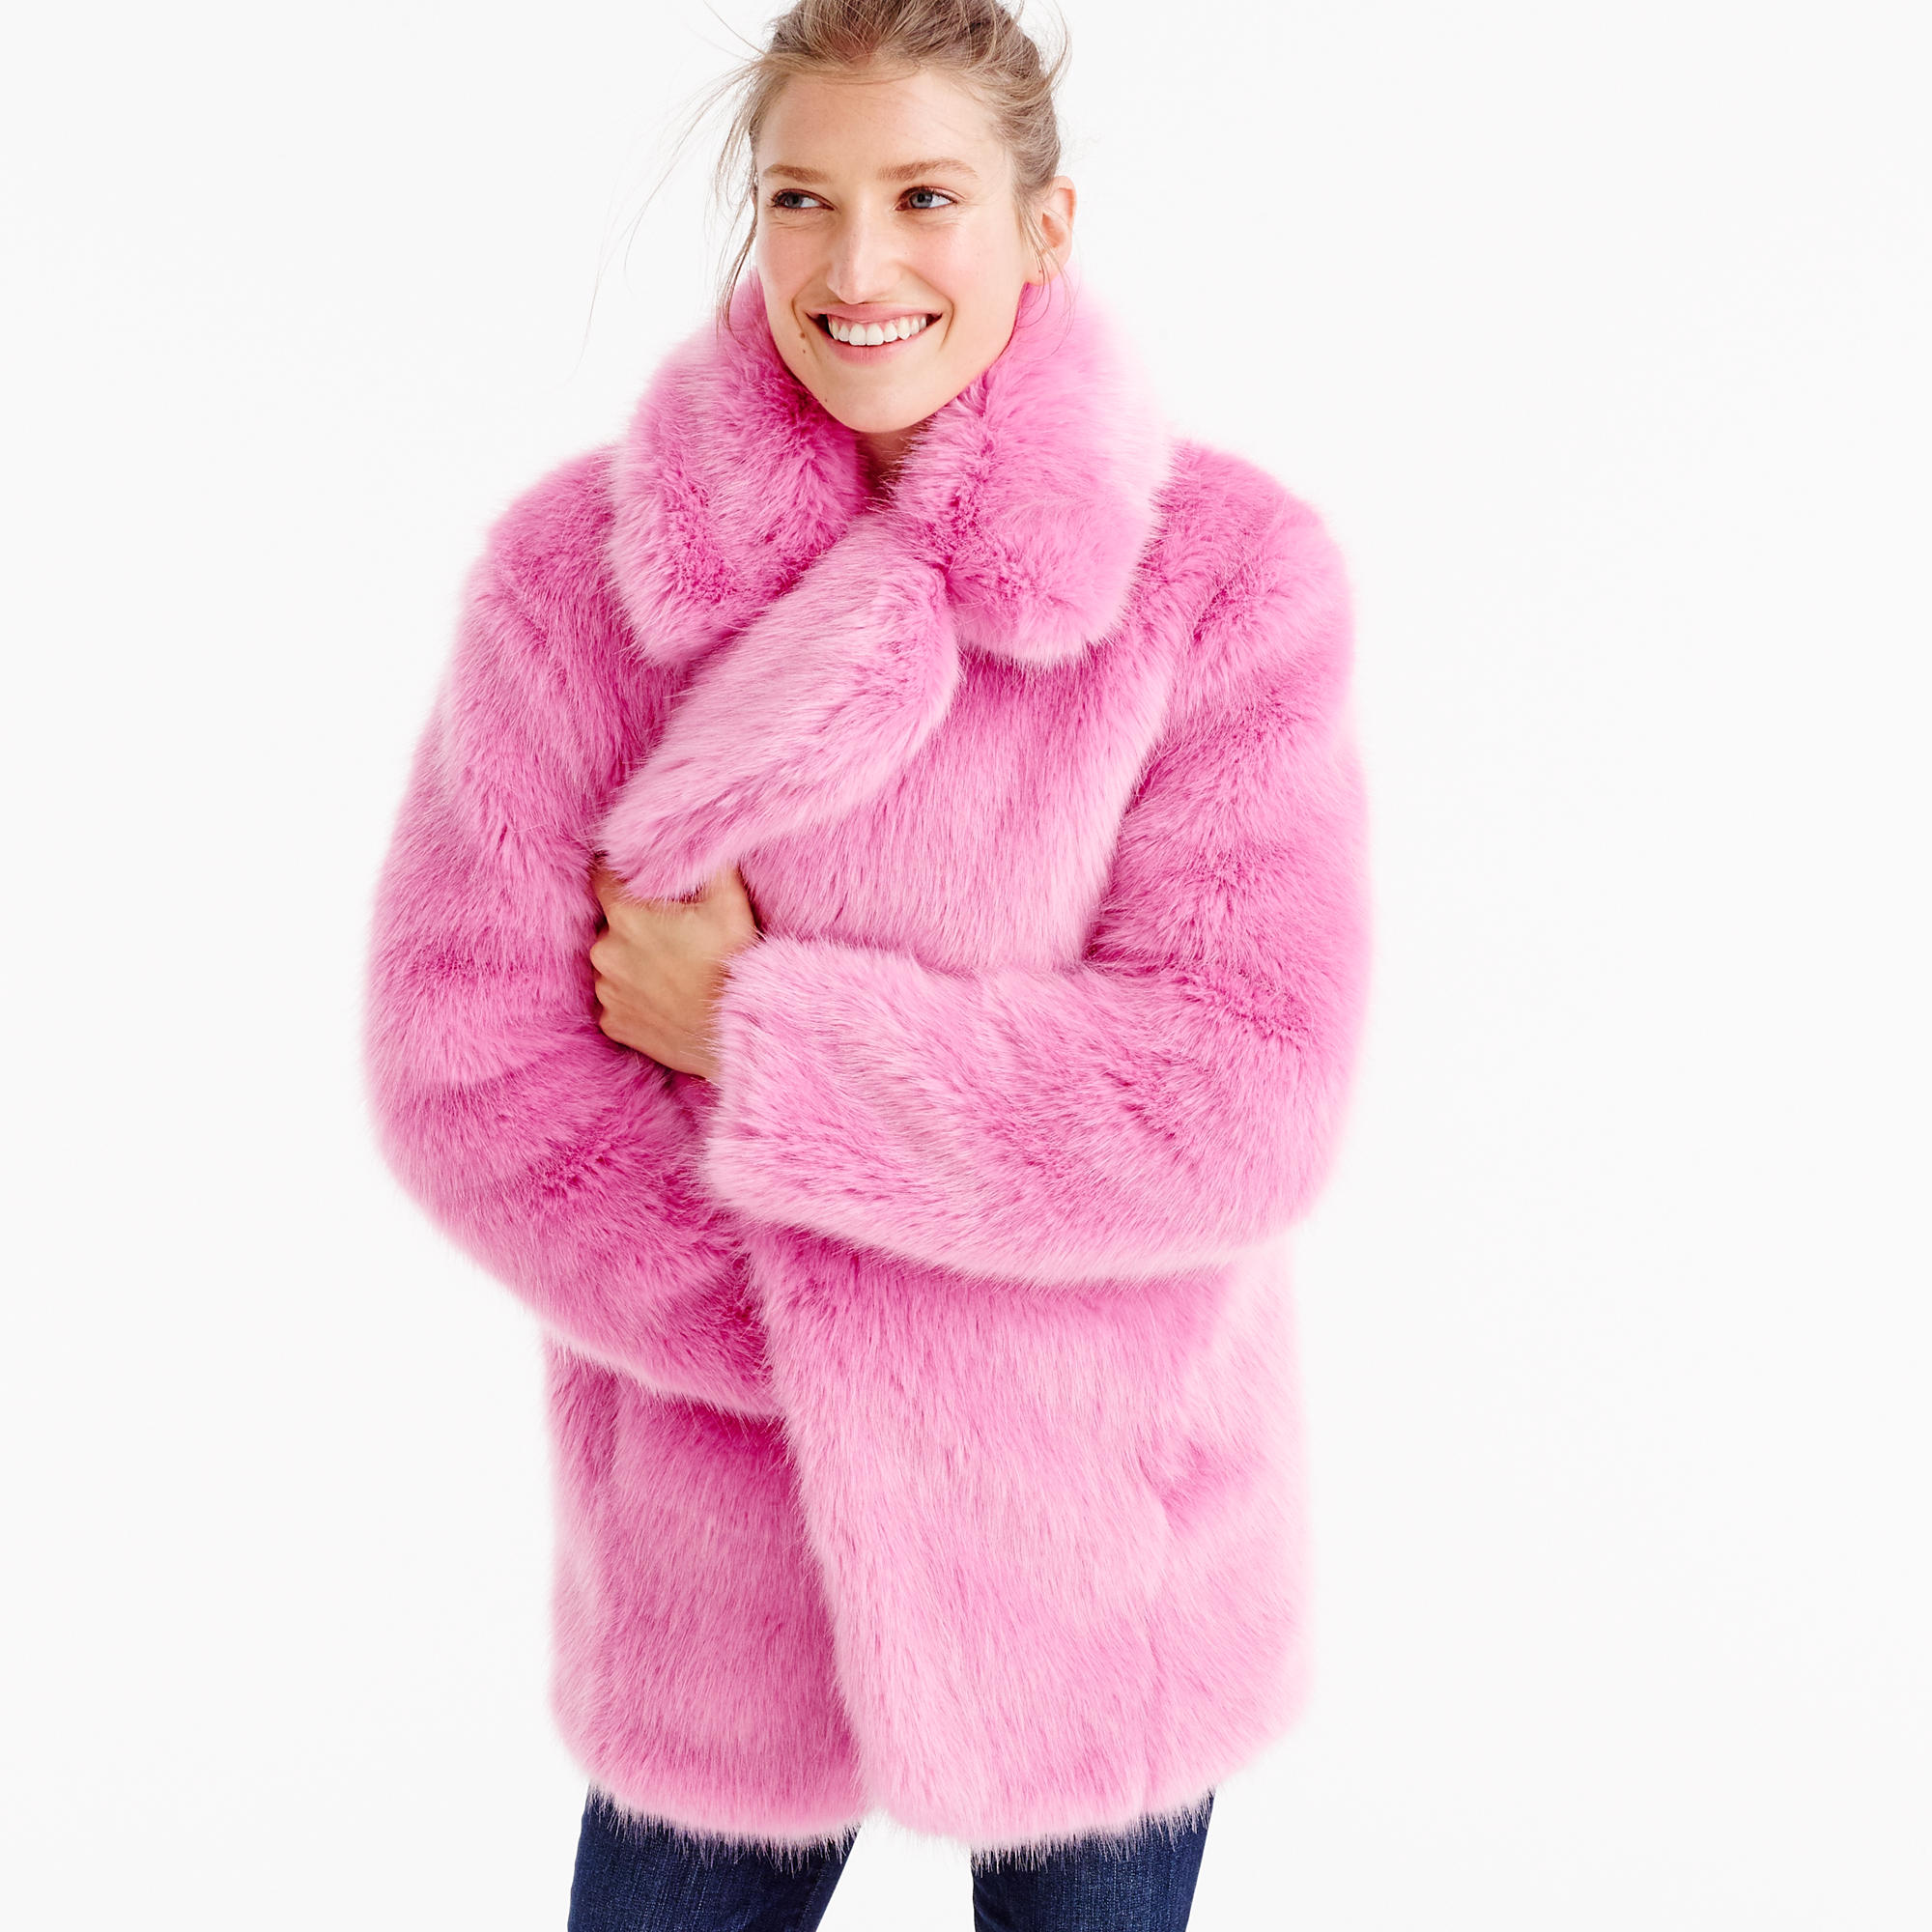 Collection Faux-Fur Jacket : Women's Coats & Jackets | J.Crew